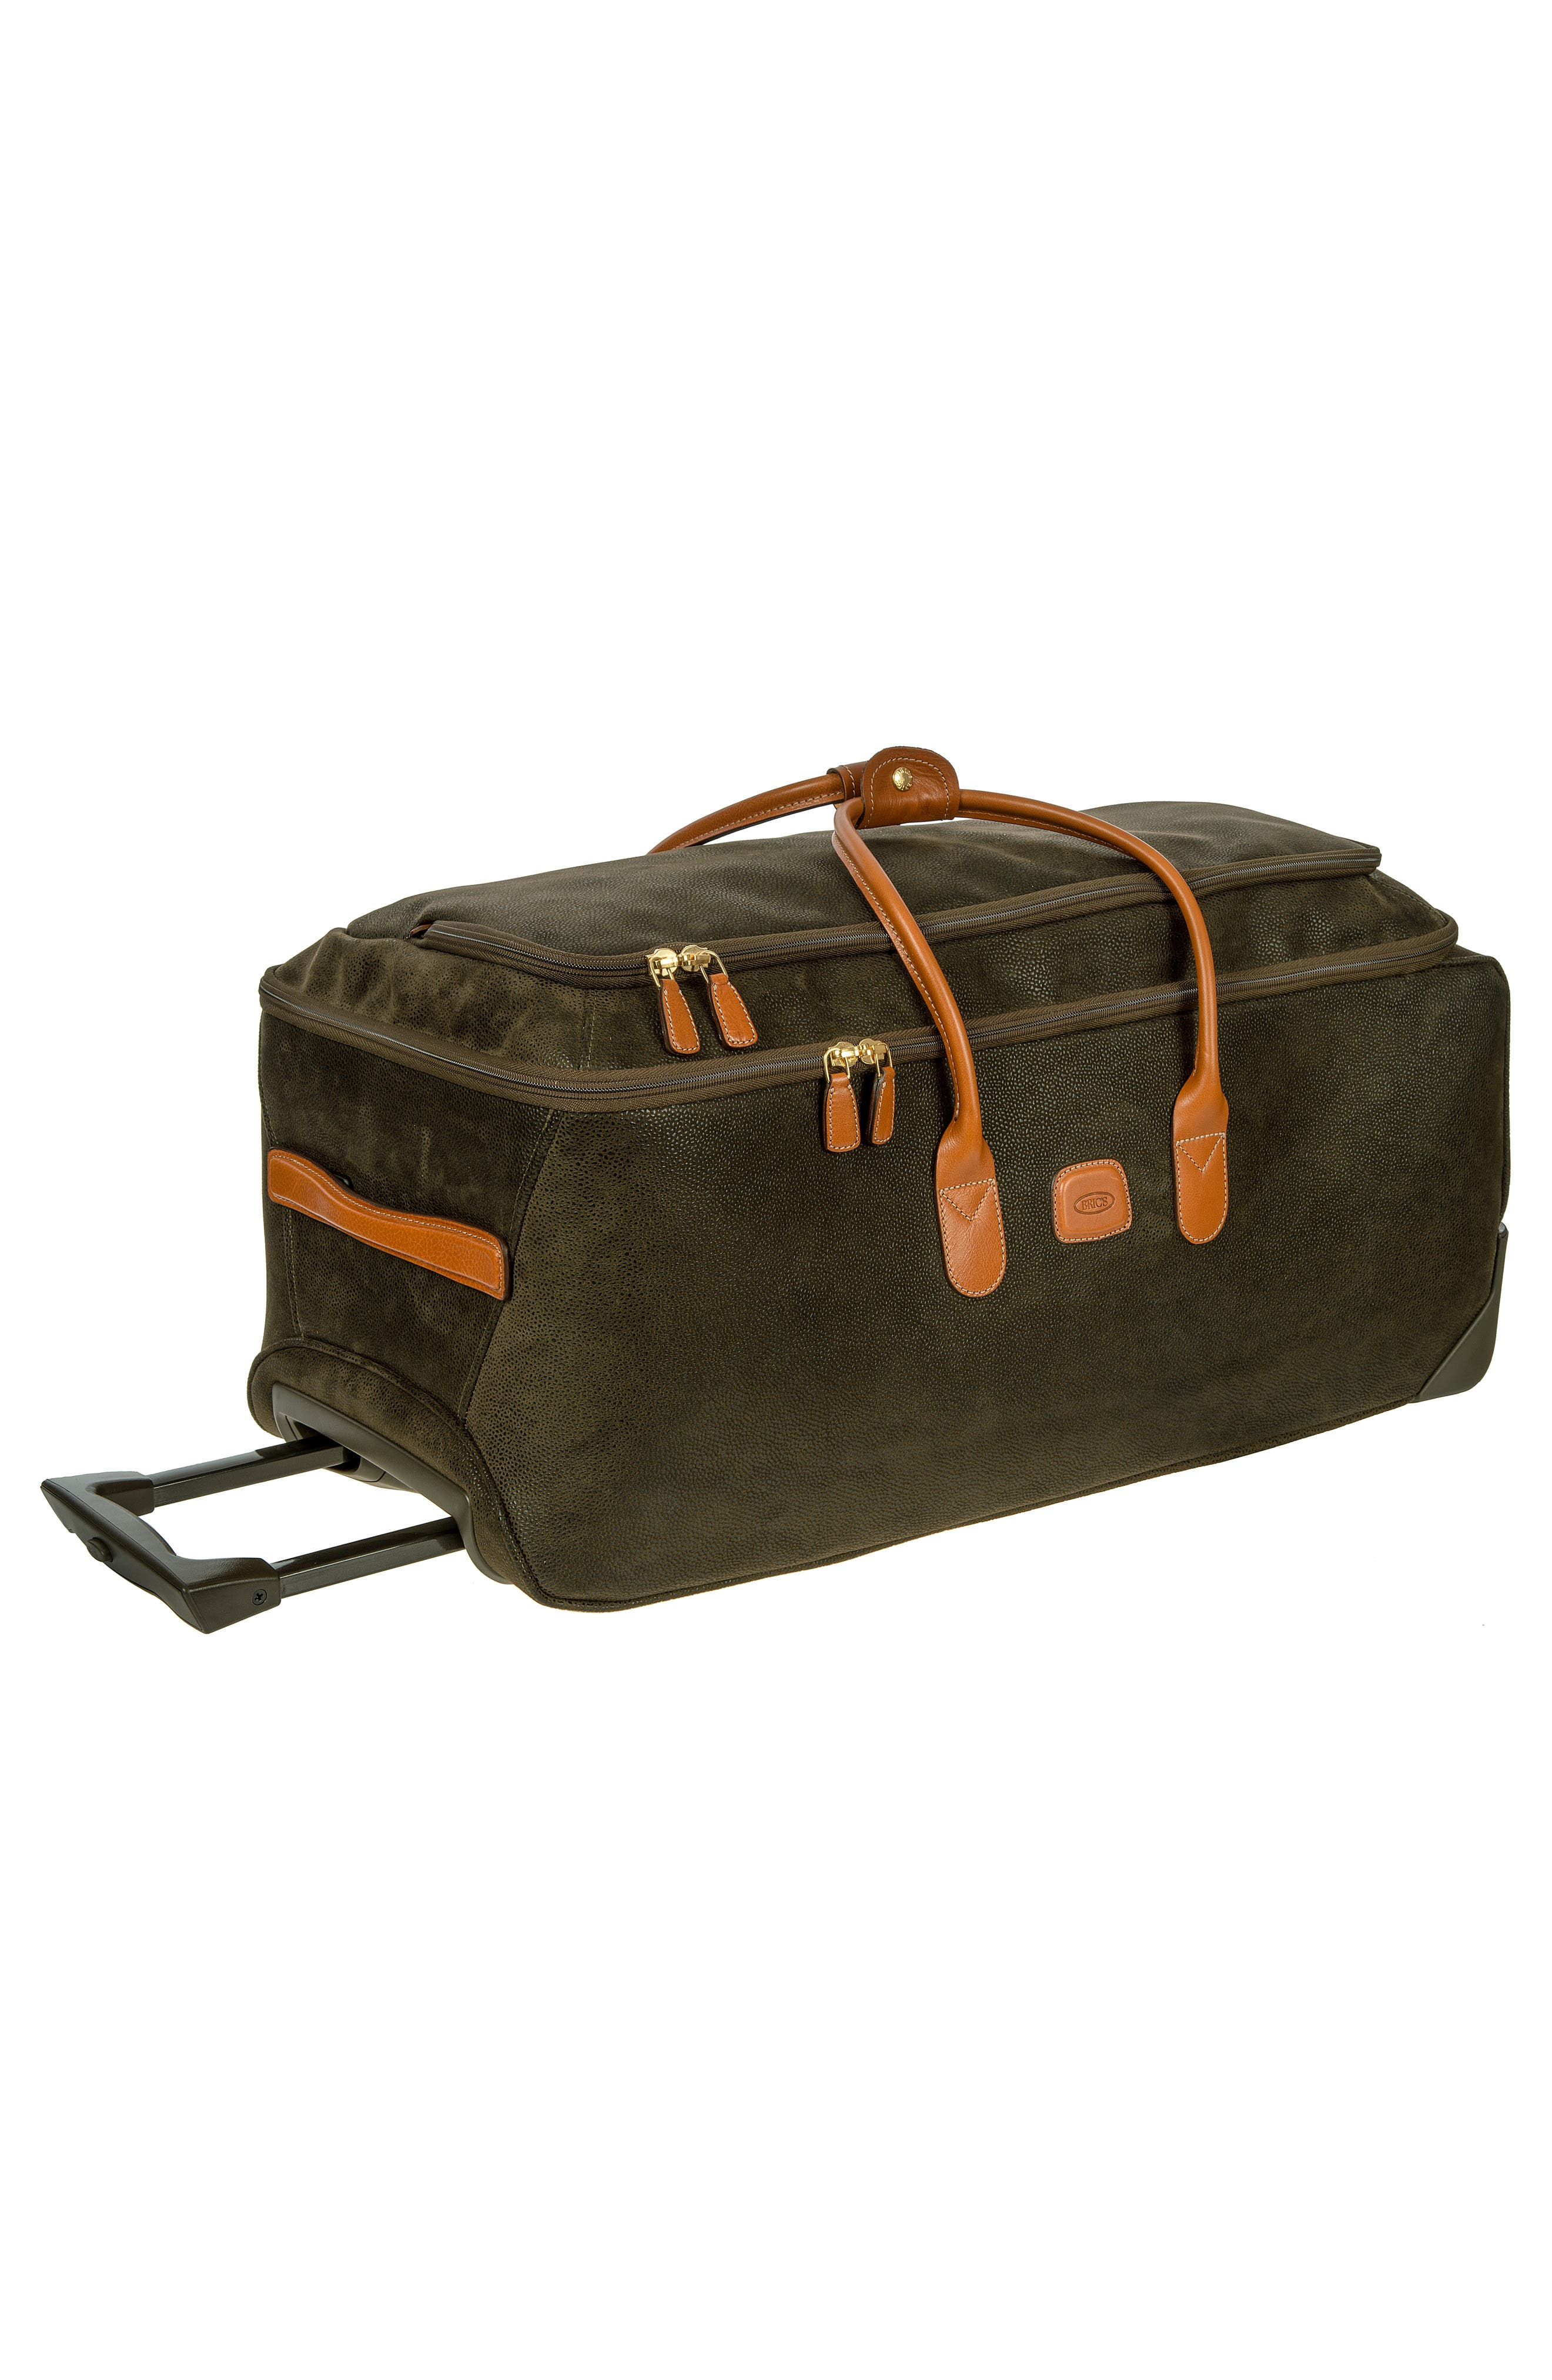 Life Collection 28-Inch Rolling Duffel Bag,                             Alternate thumbnail 7, color,                             Olive